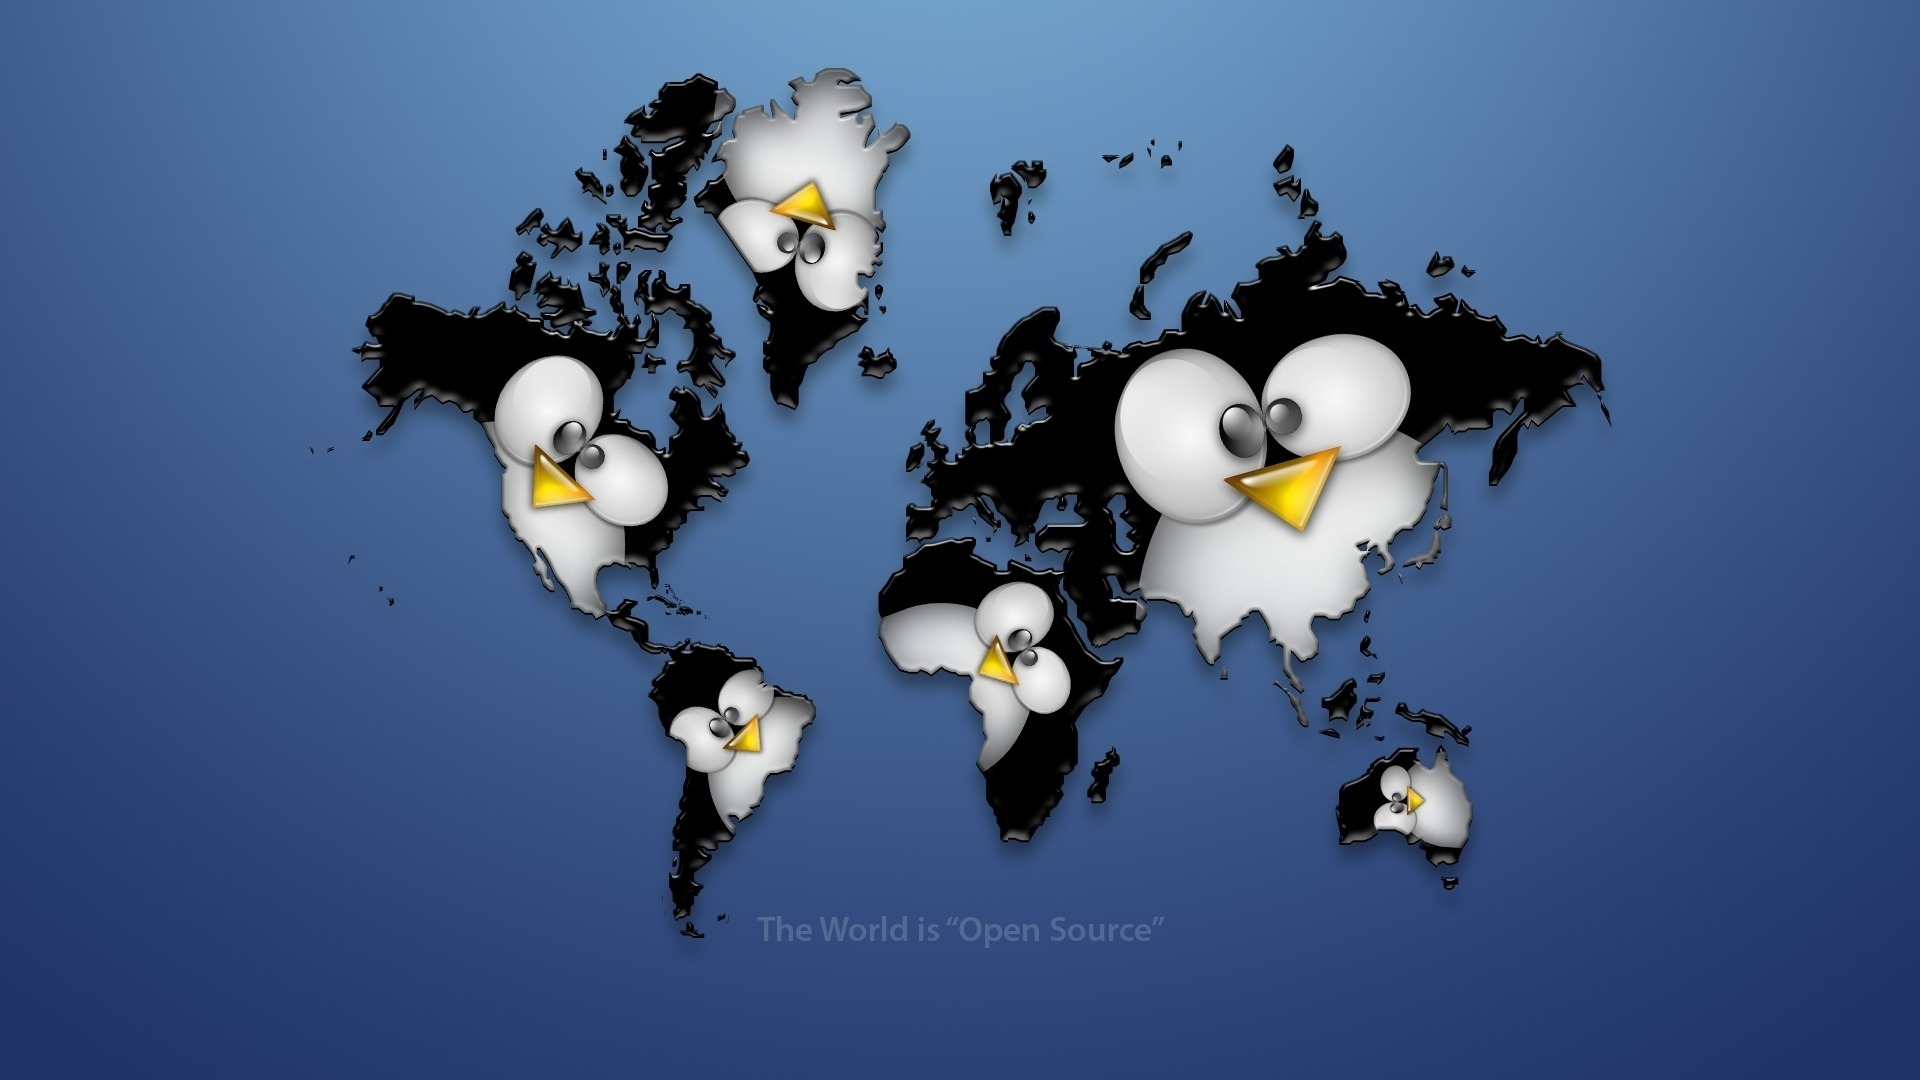 Get The Latest Linux Black Penguin News Pictures And Videos Learn All About From Wallpapers4uorg Your Wallpaper Source